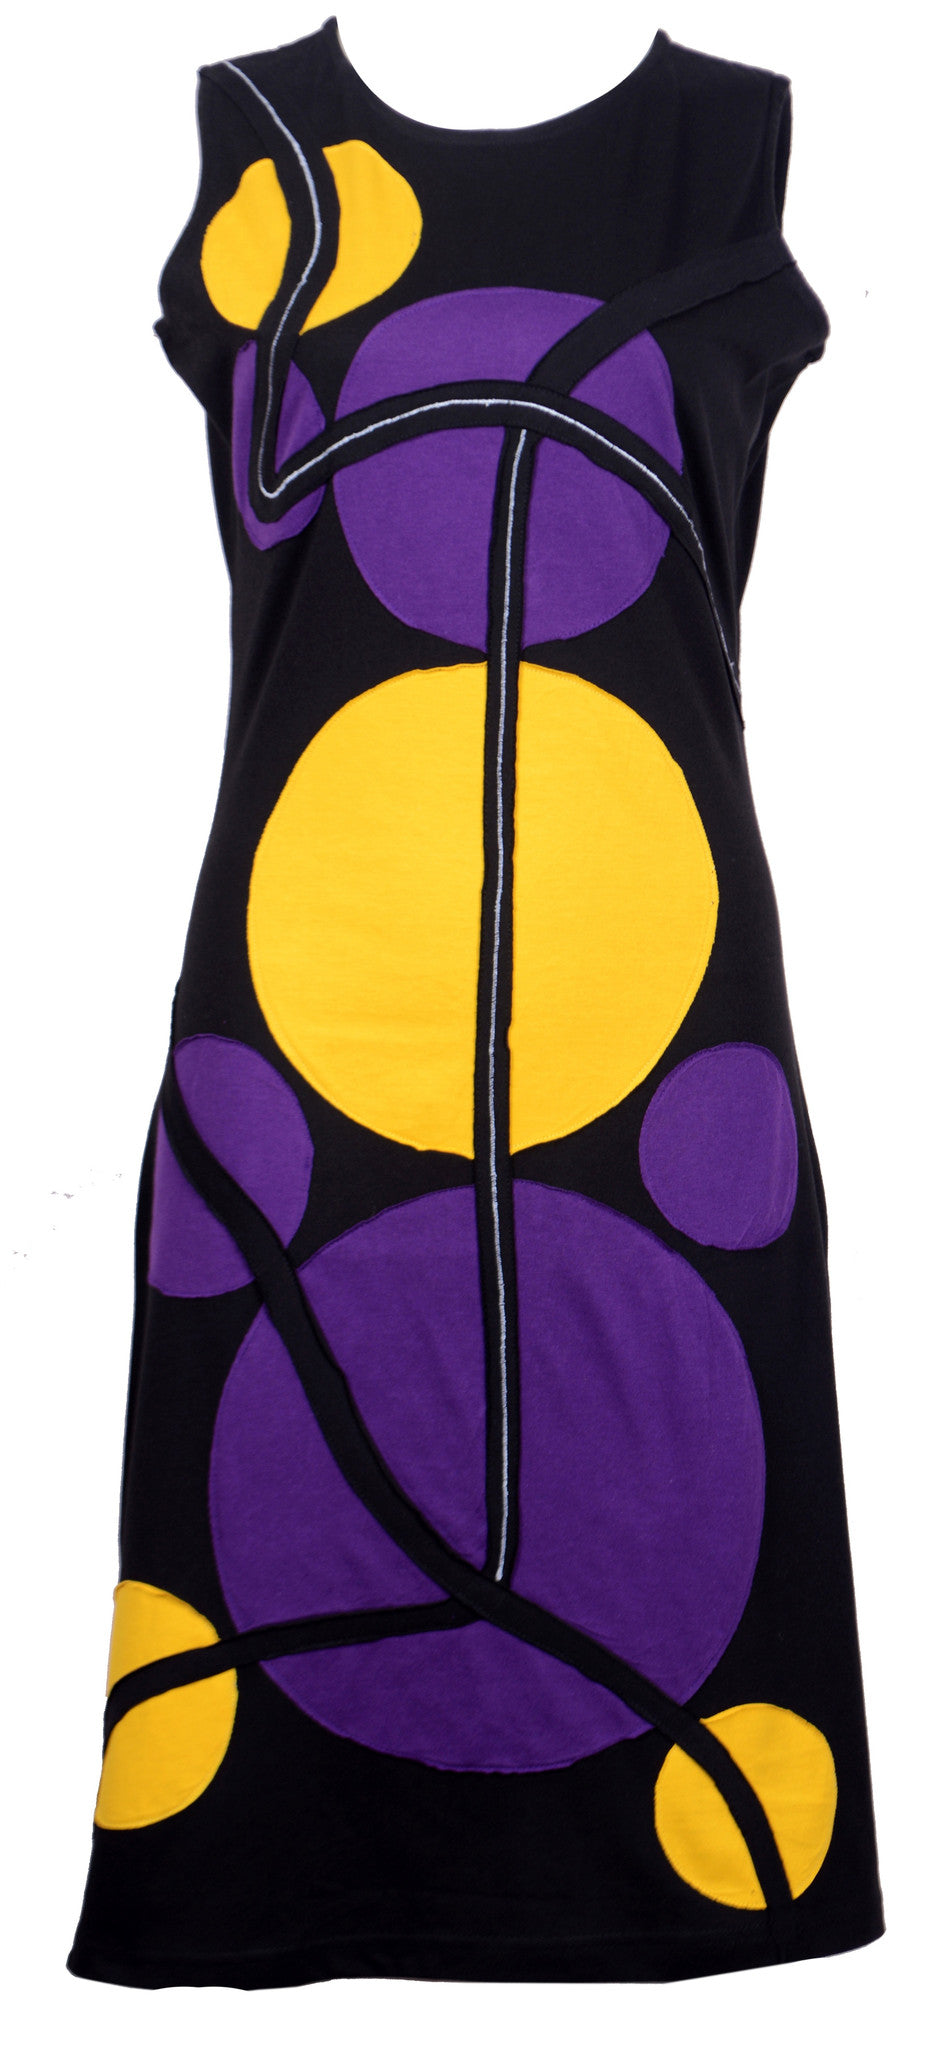 Ladies Summer Sleeveless With Colorful Patch-Eclipse - Craze Trade Limited